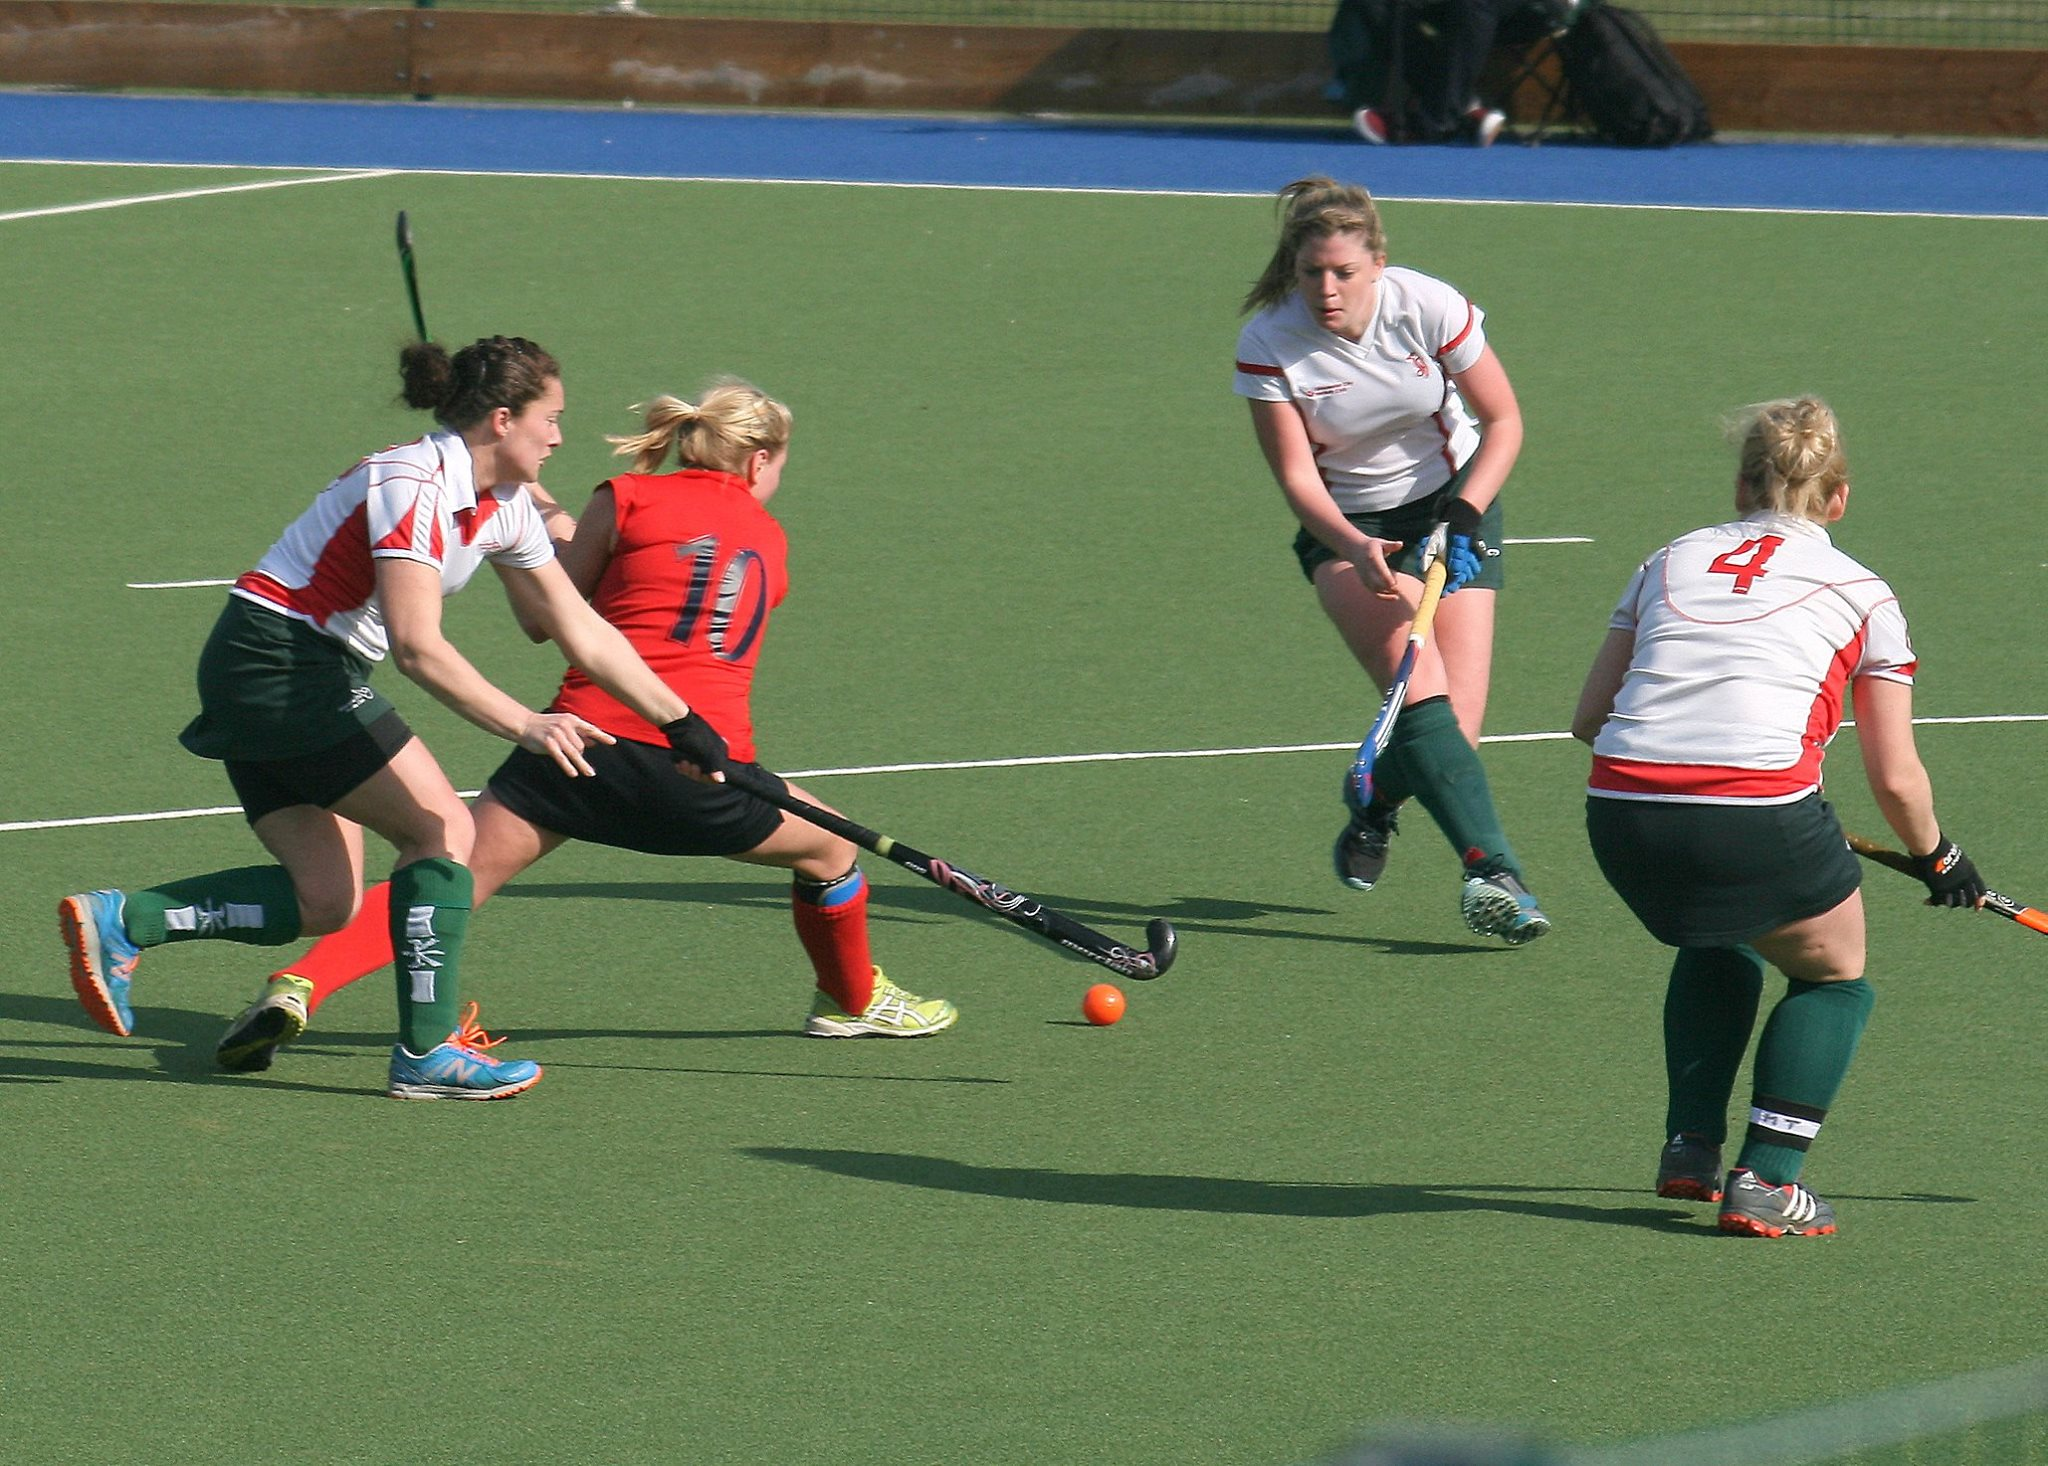 Trojans Hockey Club U18 Girls